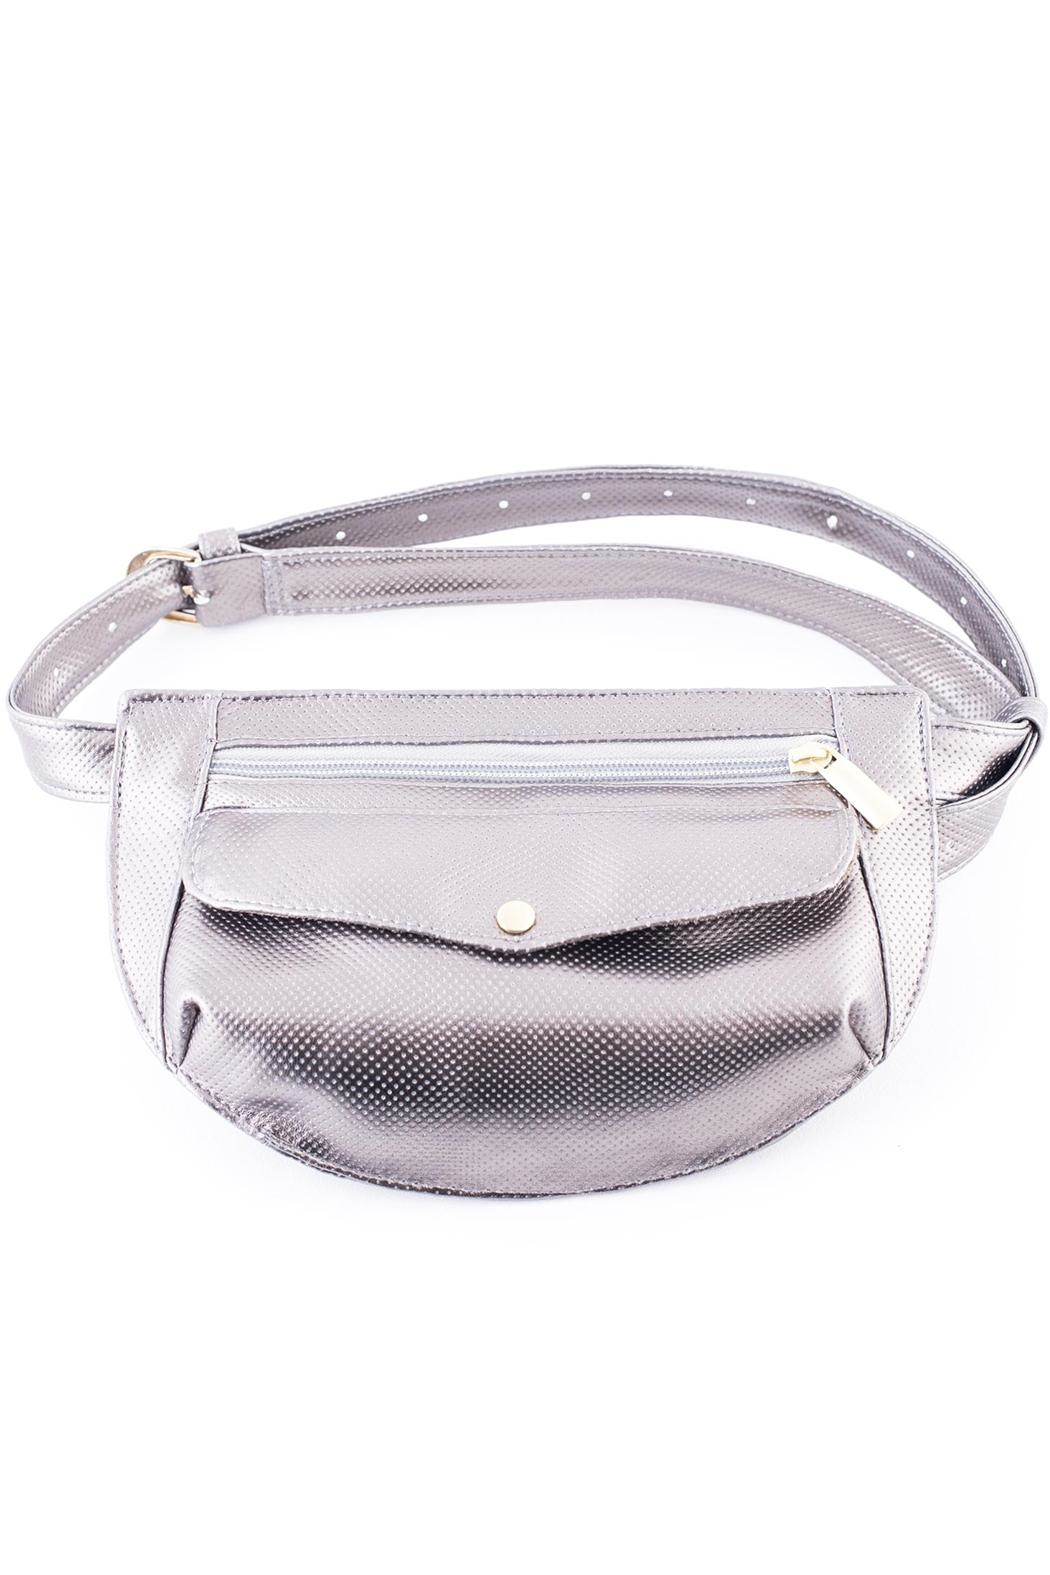 Disenia Silver Fanny Bag - Front Cropped Image